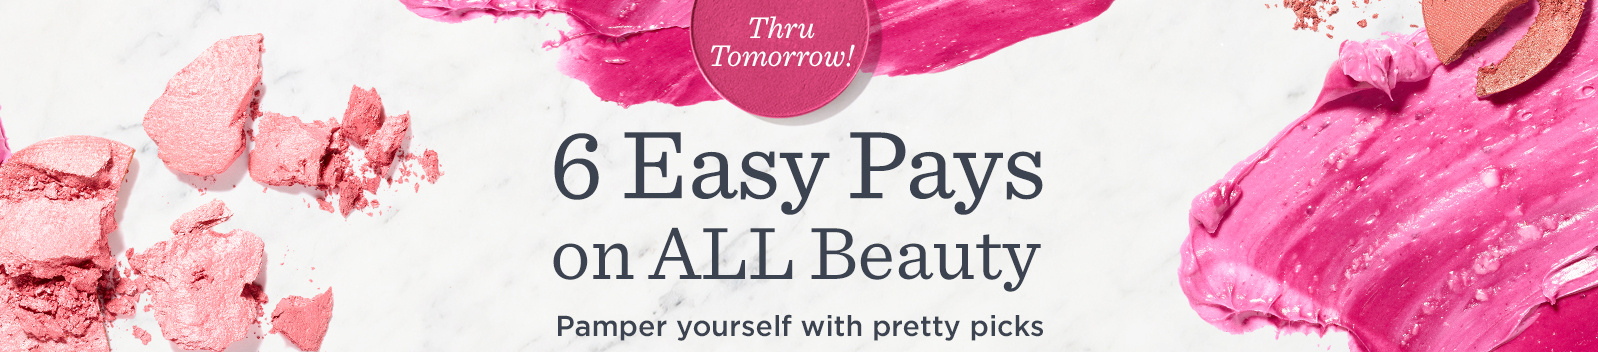 6 Easy Pays on ALL Beauty — Thru tomorrow! Pamper yourself with pretty picks